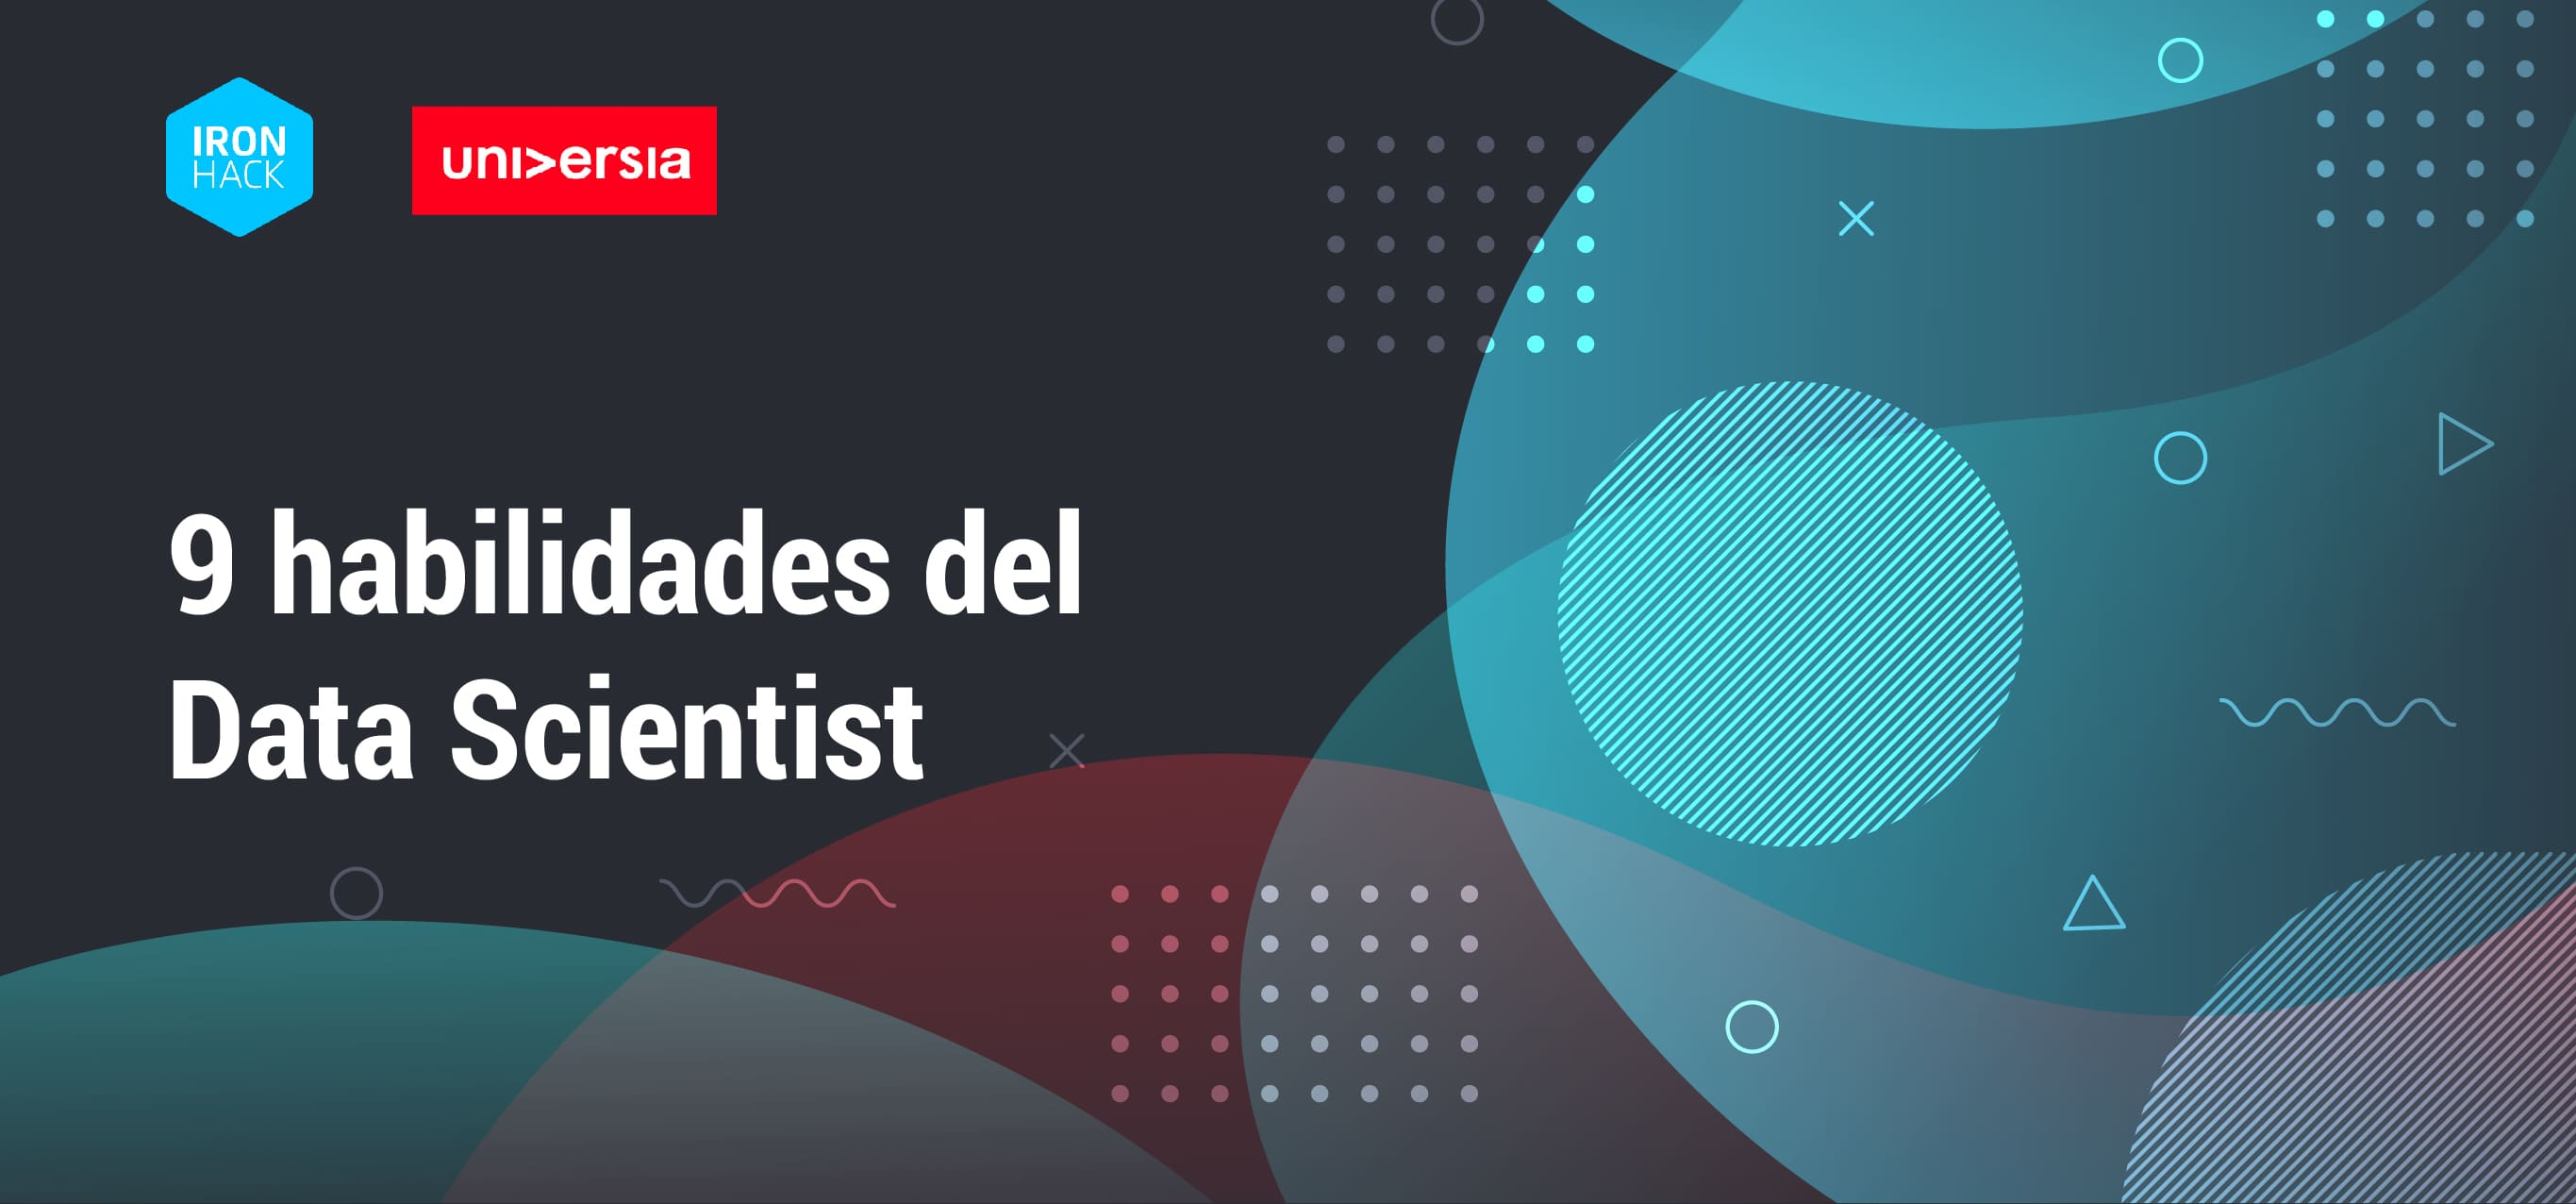 9 habilidades del Data Scientist